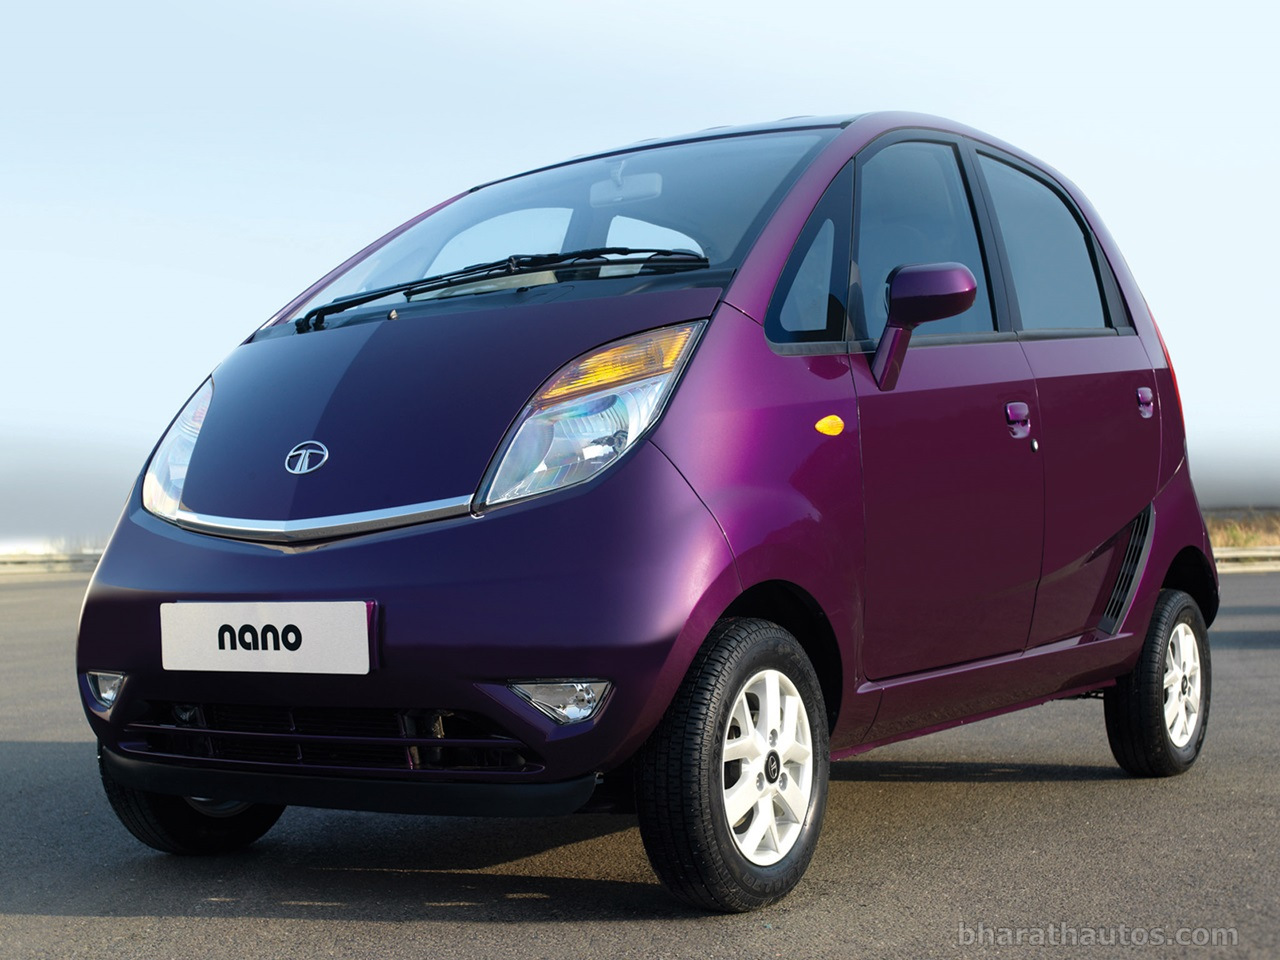 Updated Tata Nano finally gets power steering, launch in